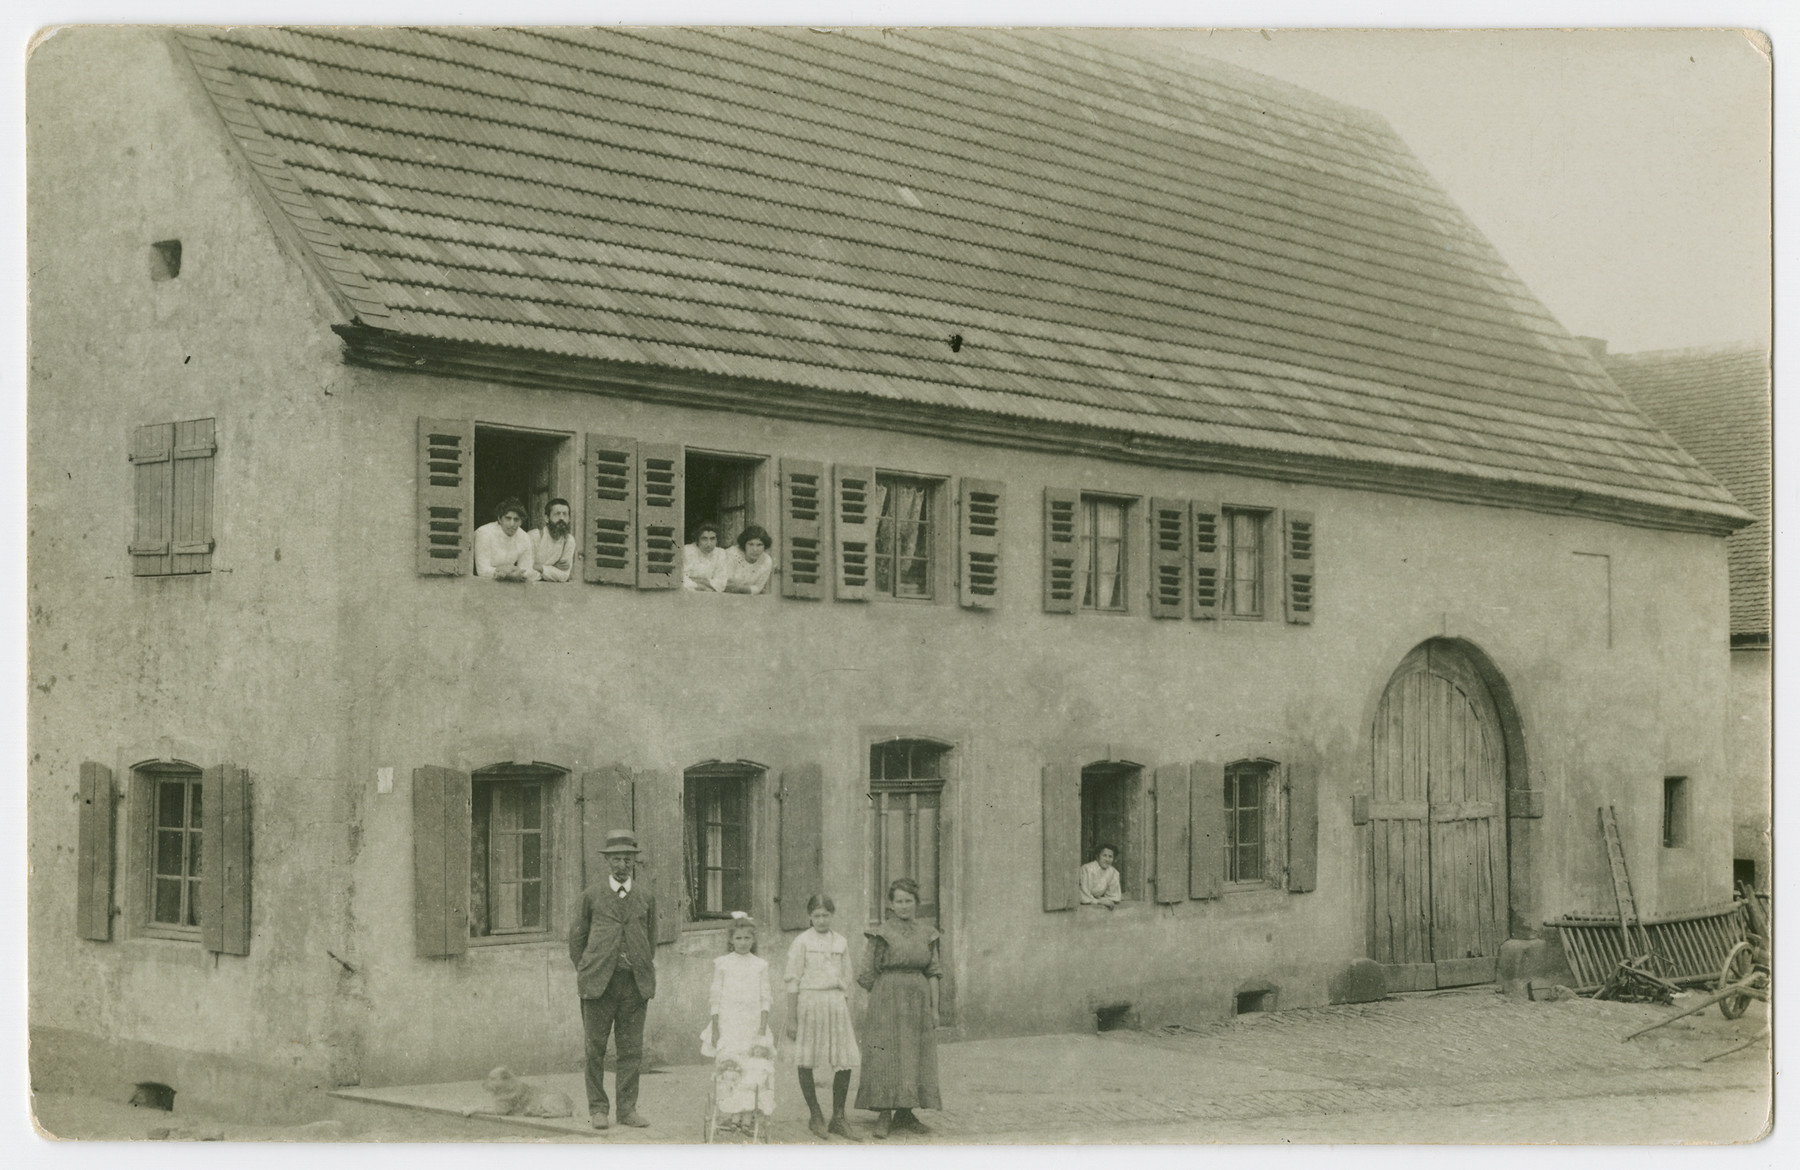 Erna Isenberg (nee Marx), far right in second floor window, poses with extended maternal relatives.    Pictured (L-R) on upper story are Settchen Schott (nee Salomon), Karl Schott, Amalie Salomon, and Erna Marx.  Salomon Salomon, Klara Salomon, Elfriede Schott, Charlotte Salomon and an unidentified woman appear standing (L-R) and in a lower story window.